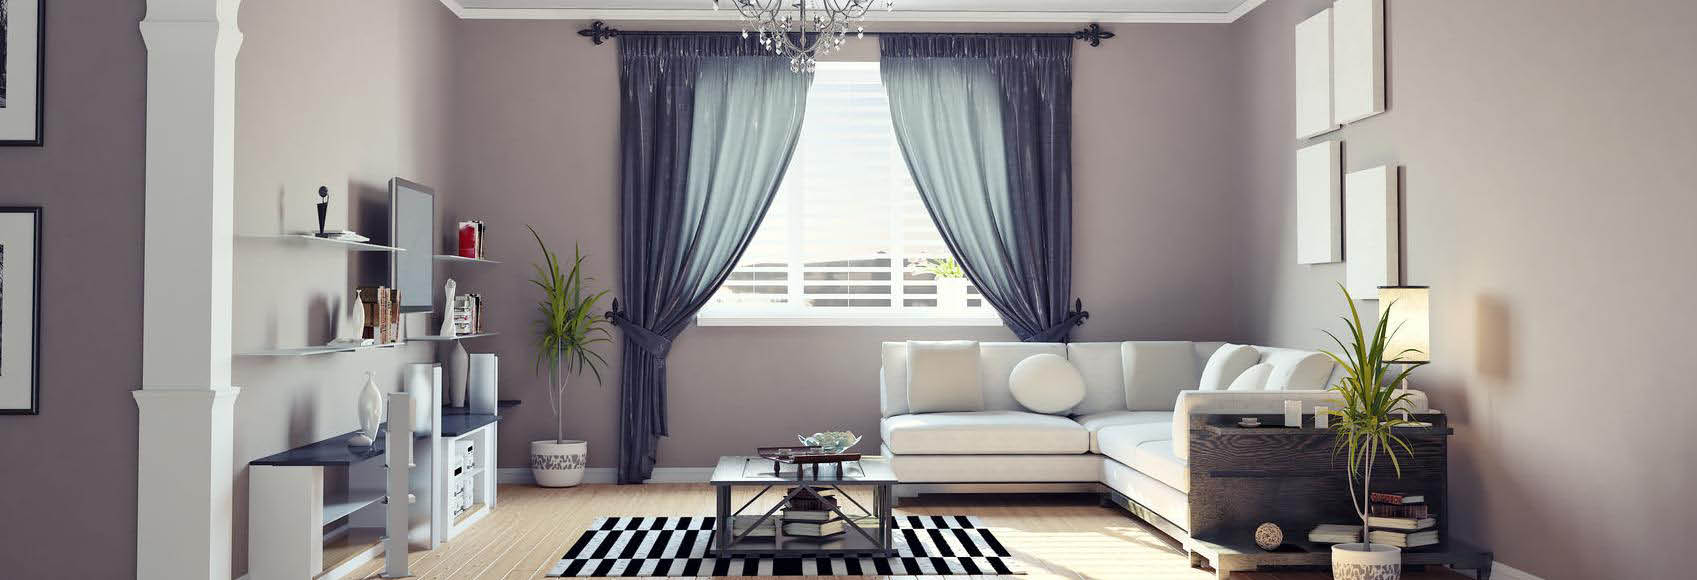 Beautiful Budget Blinds draperies frame the windows and highlight the room banner